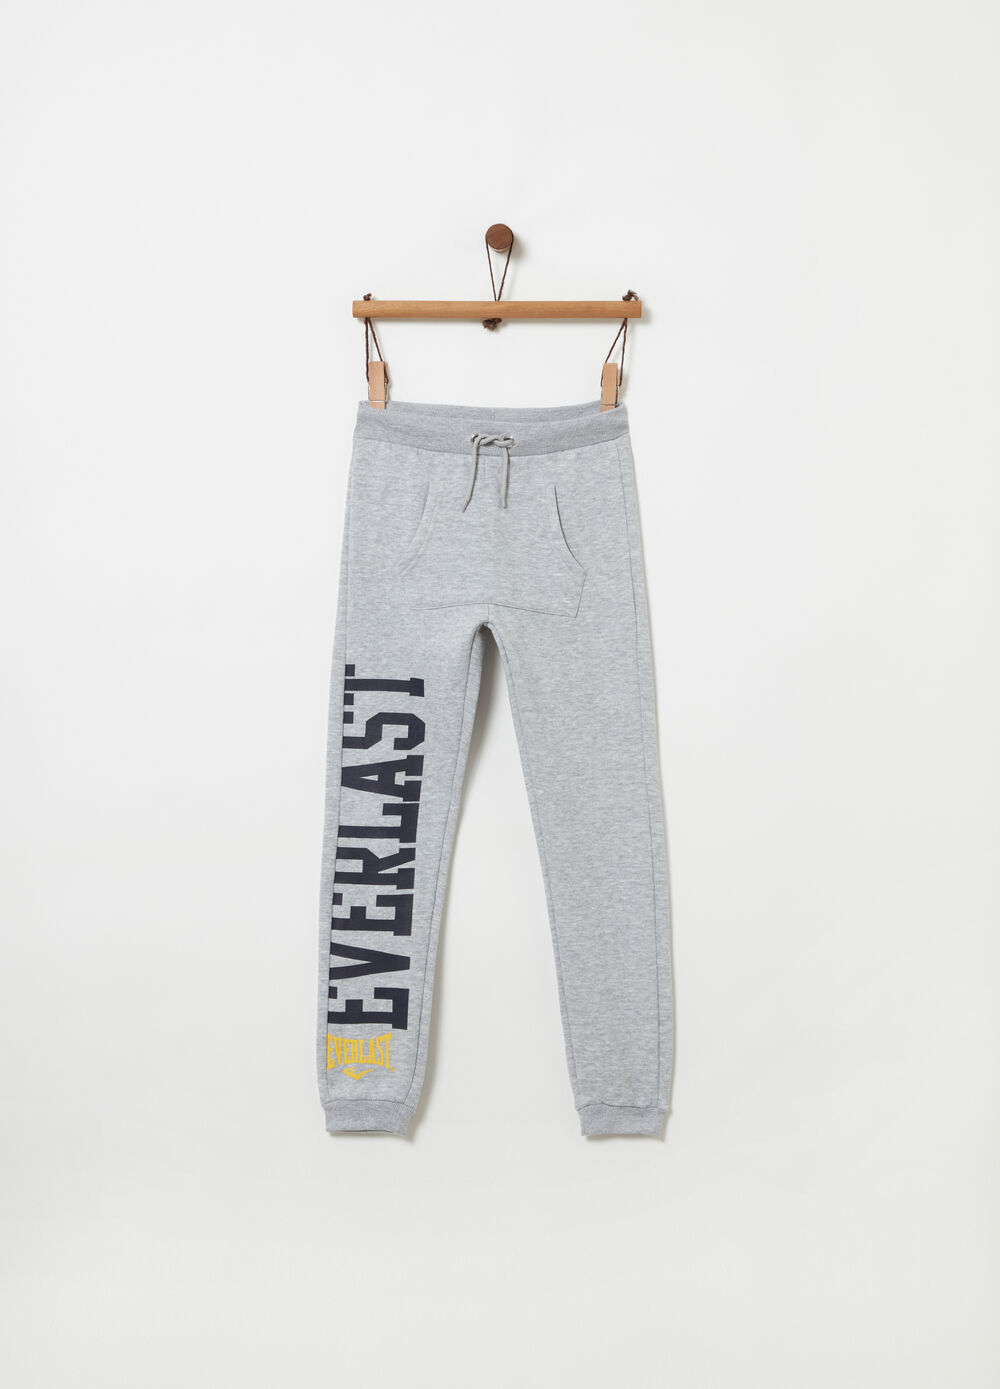 Everlast trousers in fleece winter fabric